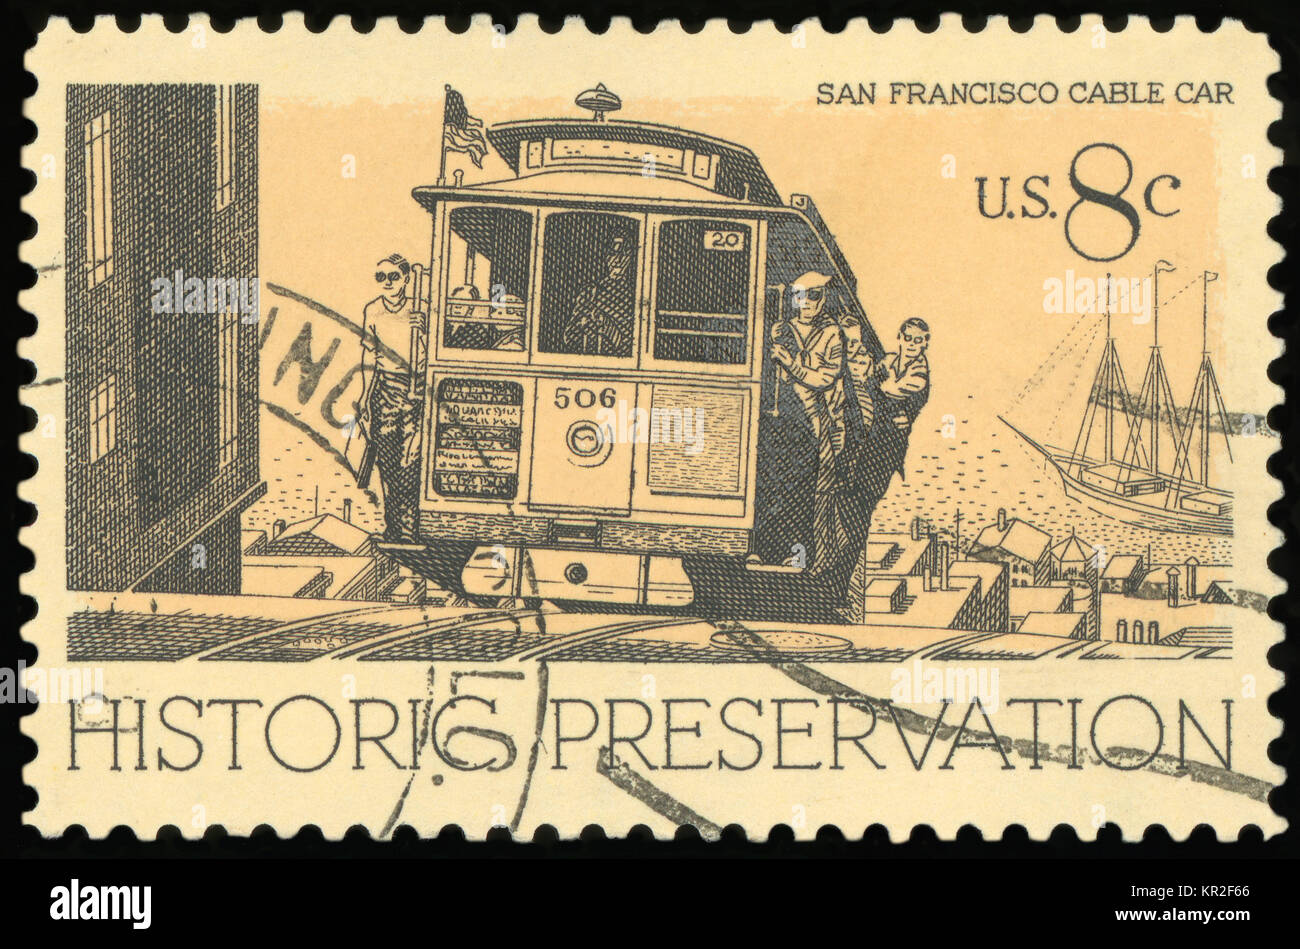 UNITED STATES - CIRCA 1971: A stamp printed in USA, shows Cable Car, San Francisco, series Historic Preservation - Stock Image